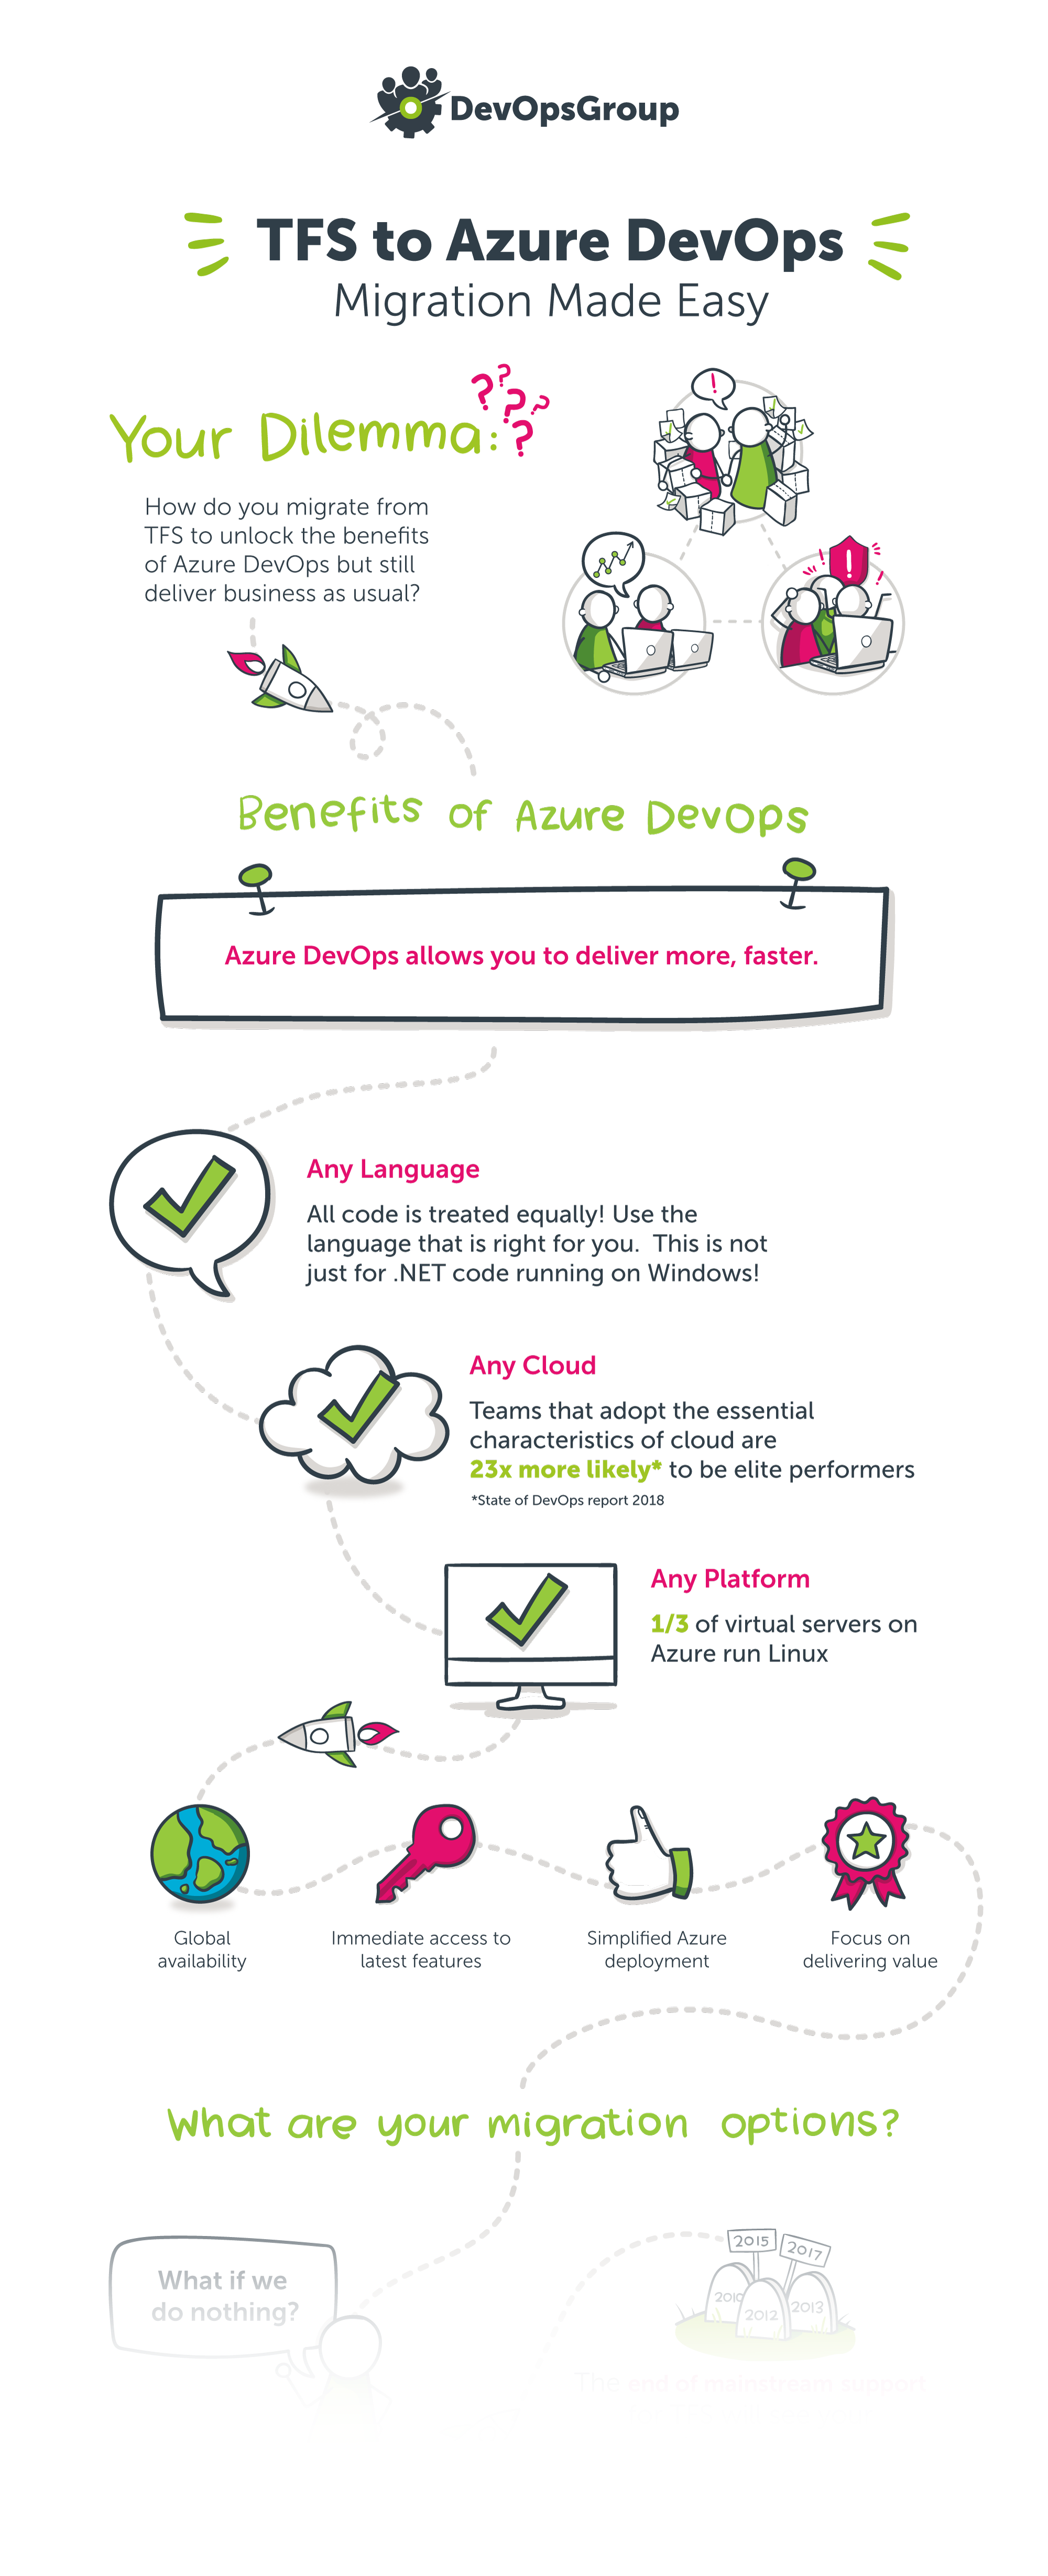 devopsgroup_tfs_migration_infographic_email_cutoff-1